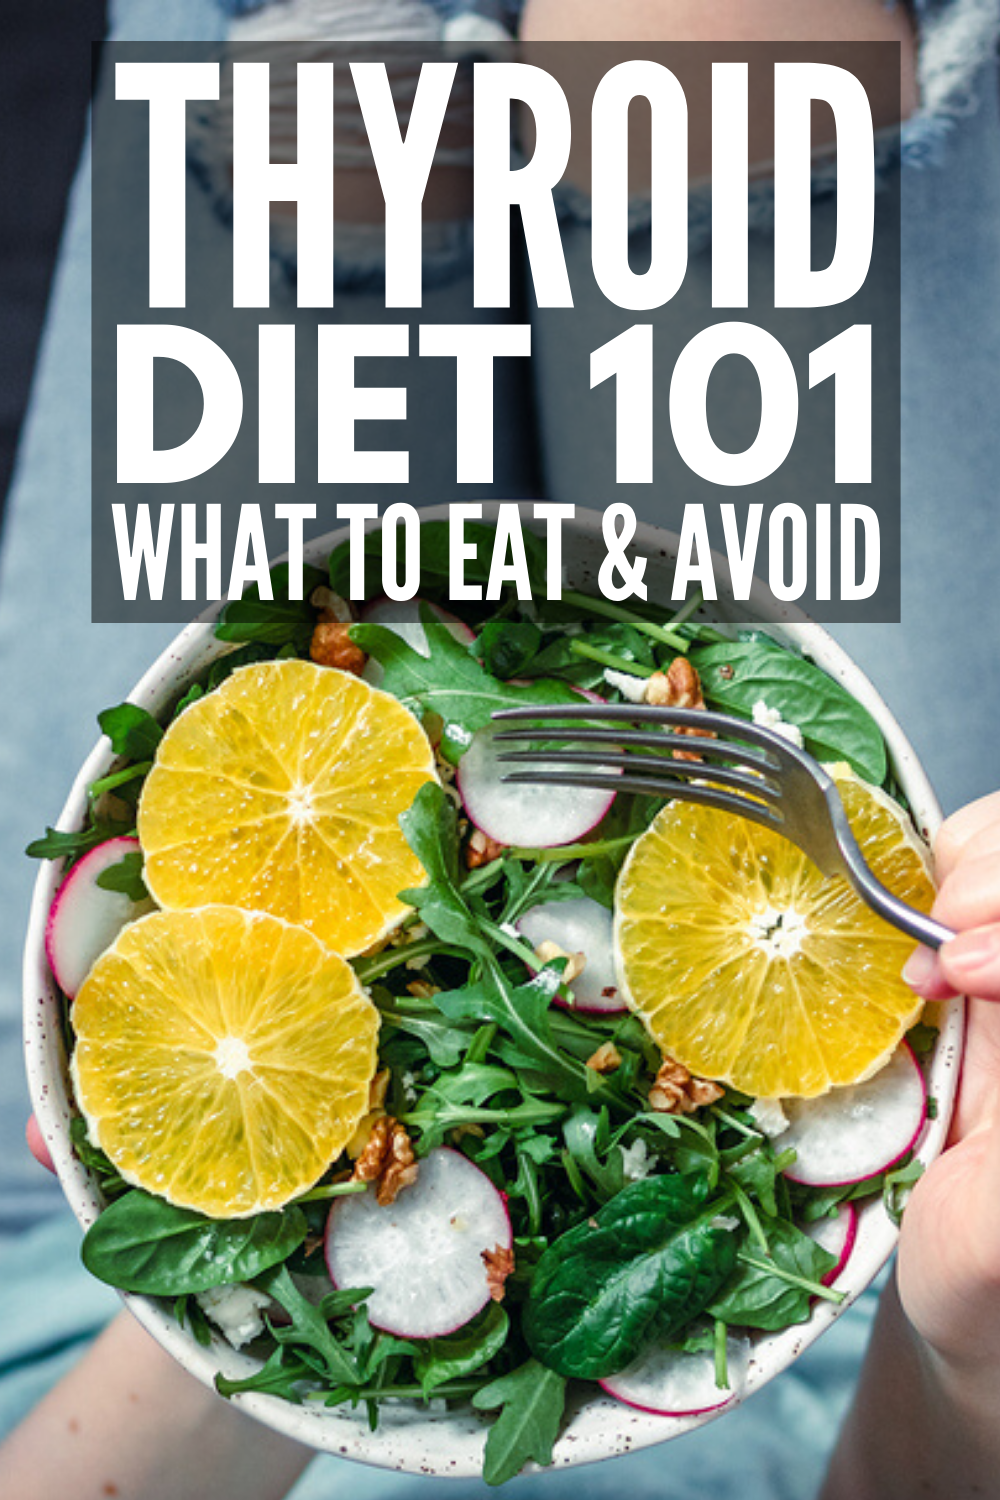 Hashimoto's Disease Diet: 10 Foods to Eat and Avoi